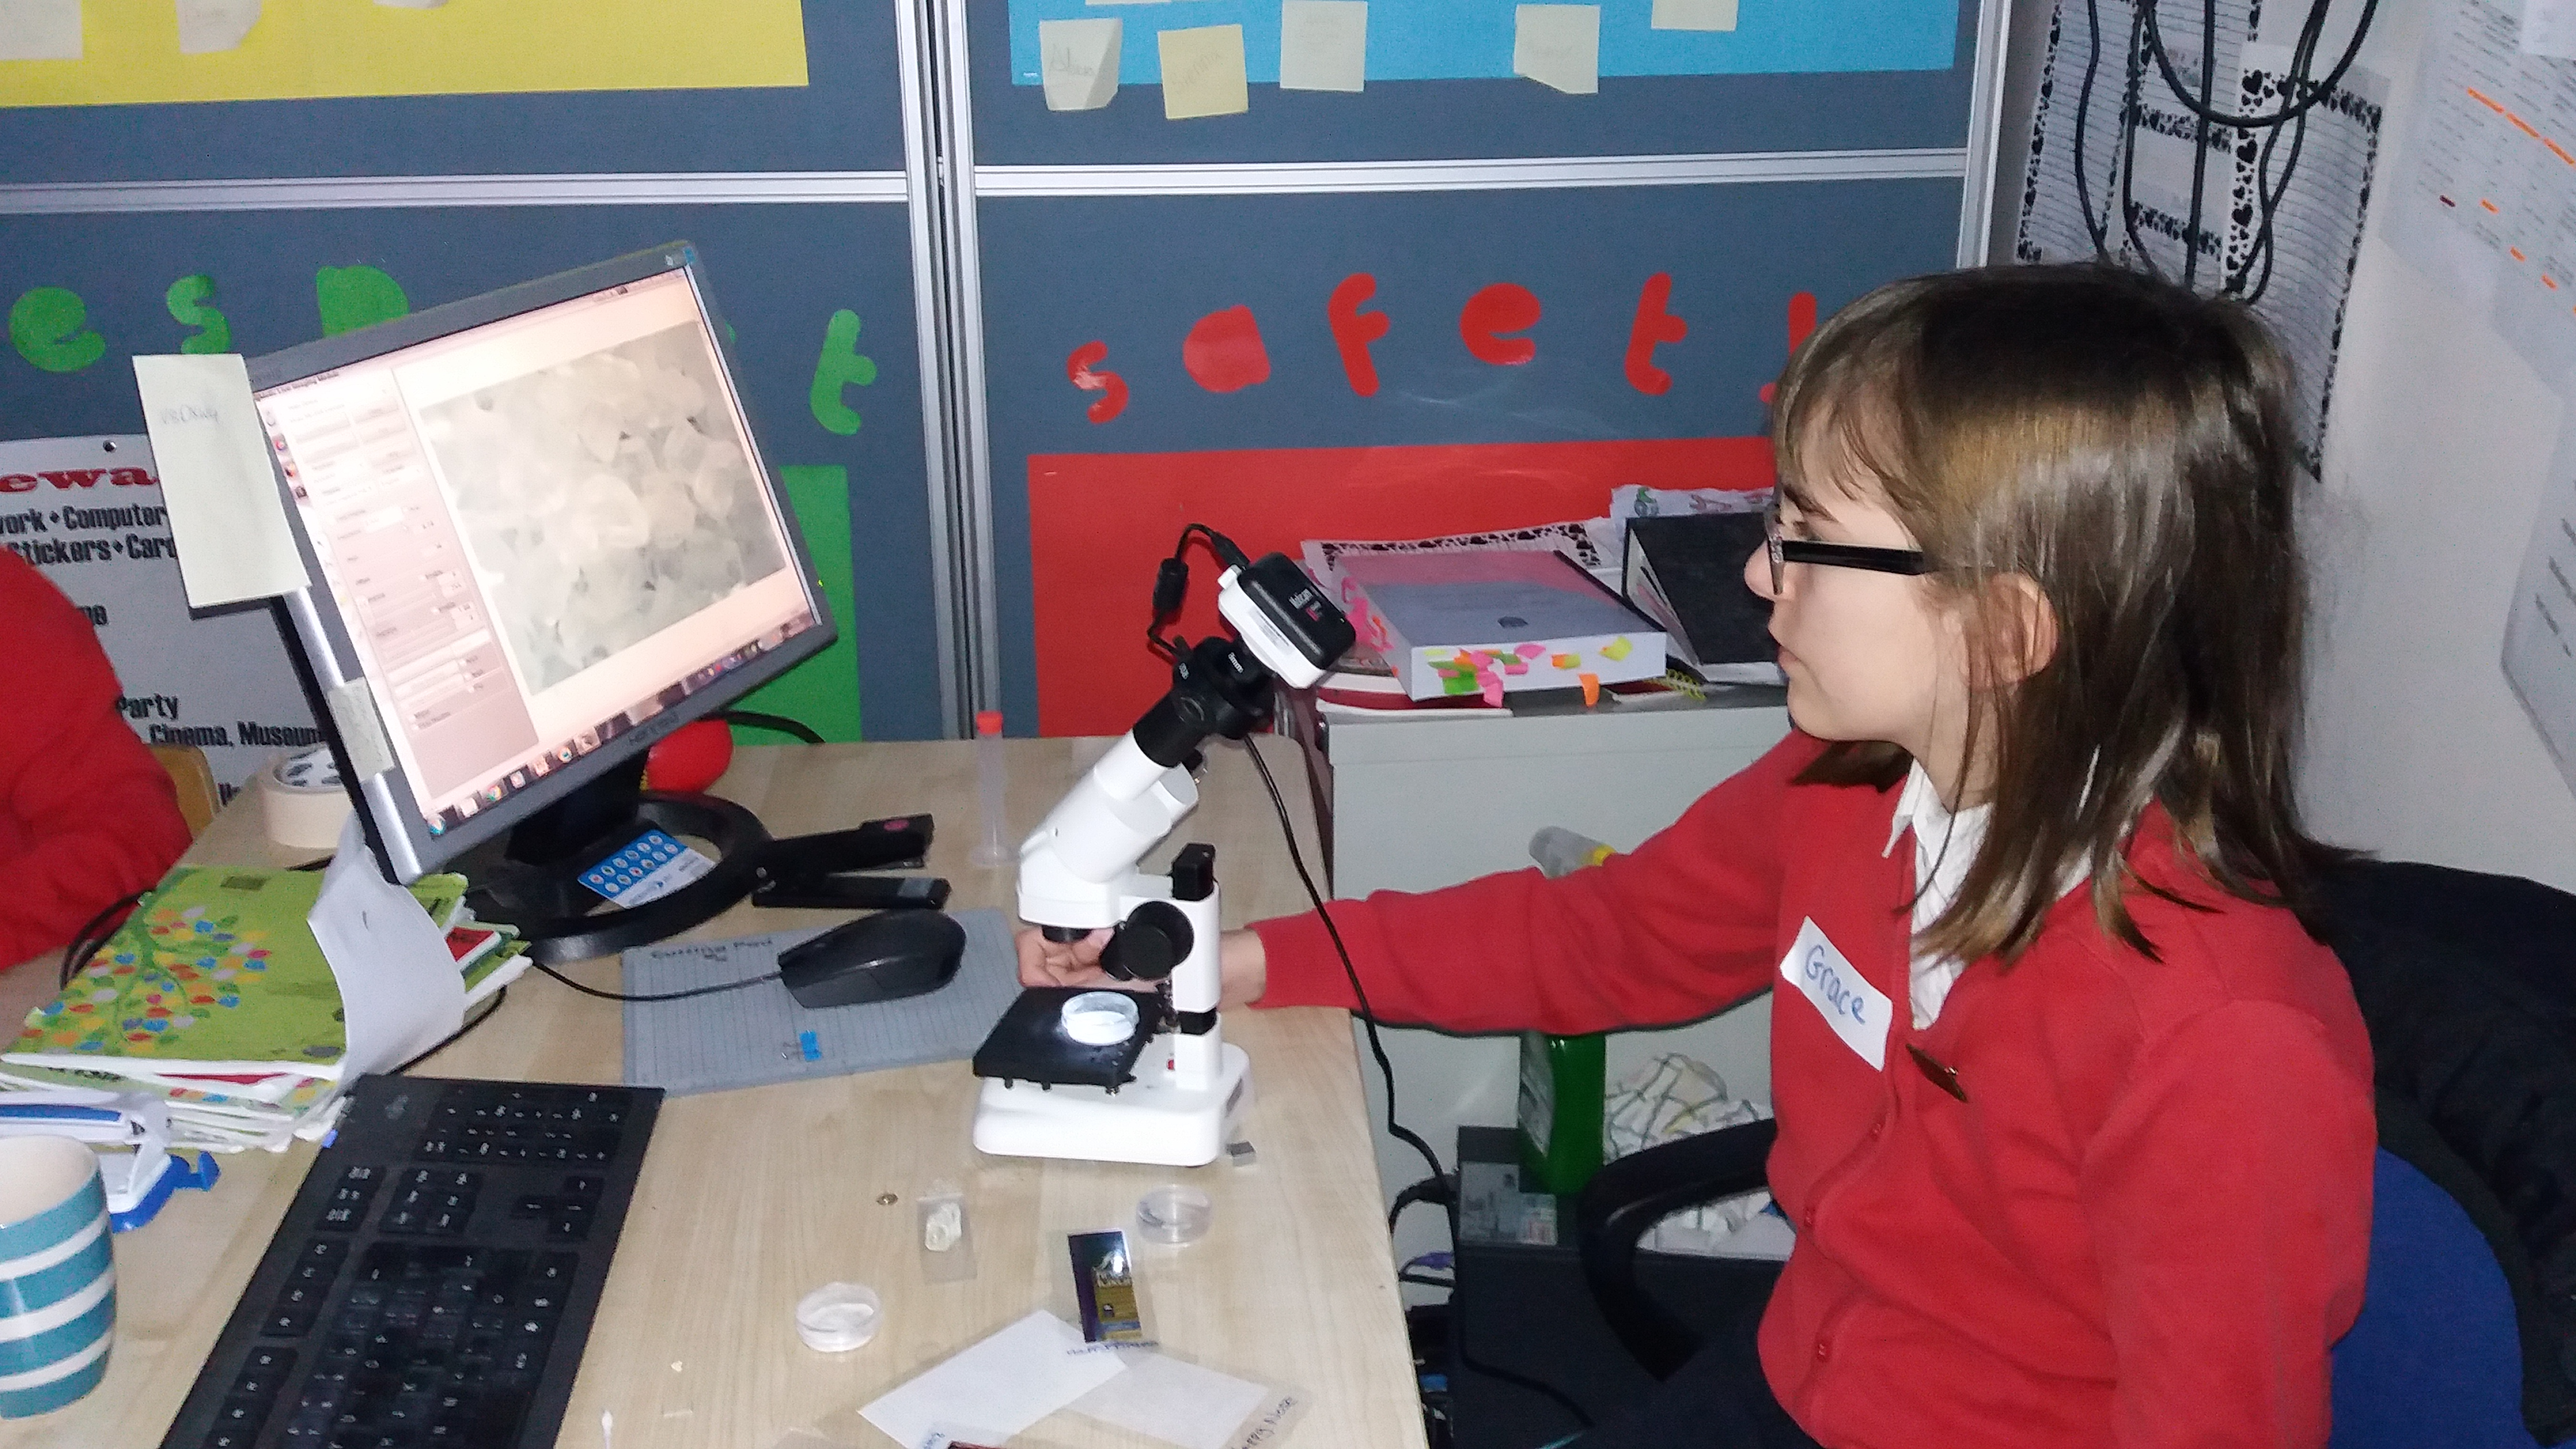 Grace from 6th attached her microscope to the computer to share her findings with the class